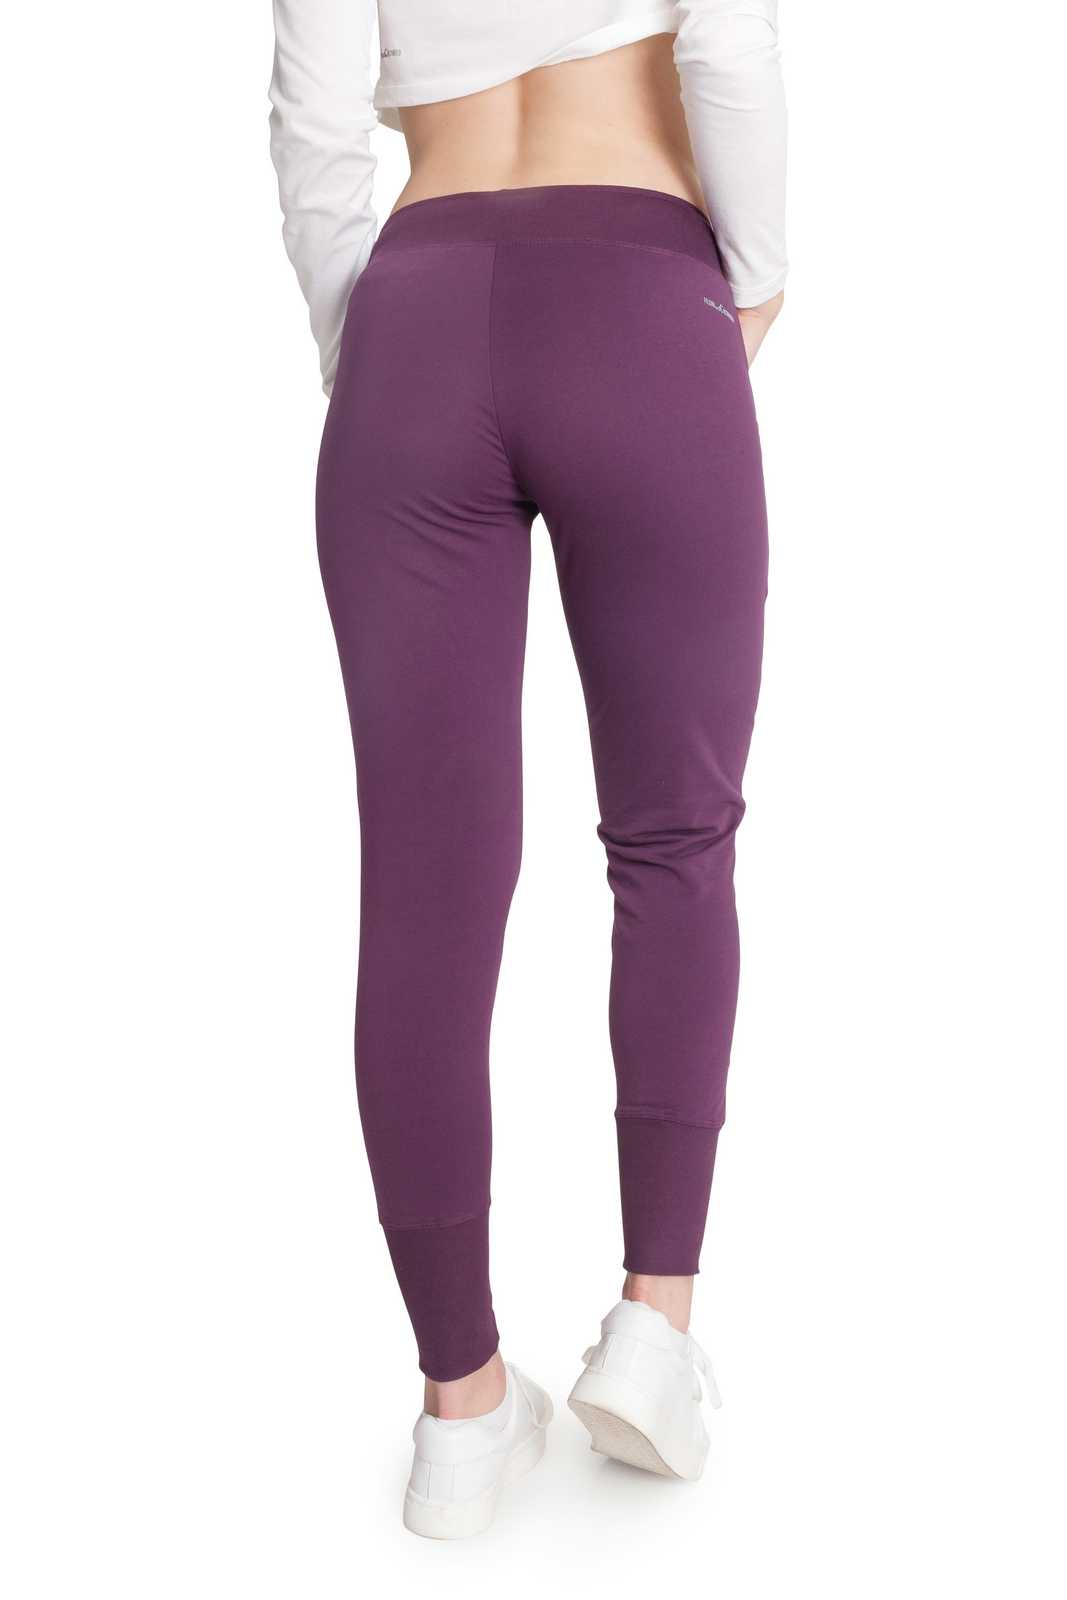 Lilac | Women's Rib Cuffs Sweatpants